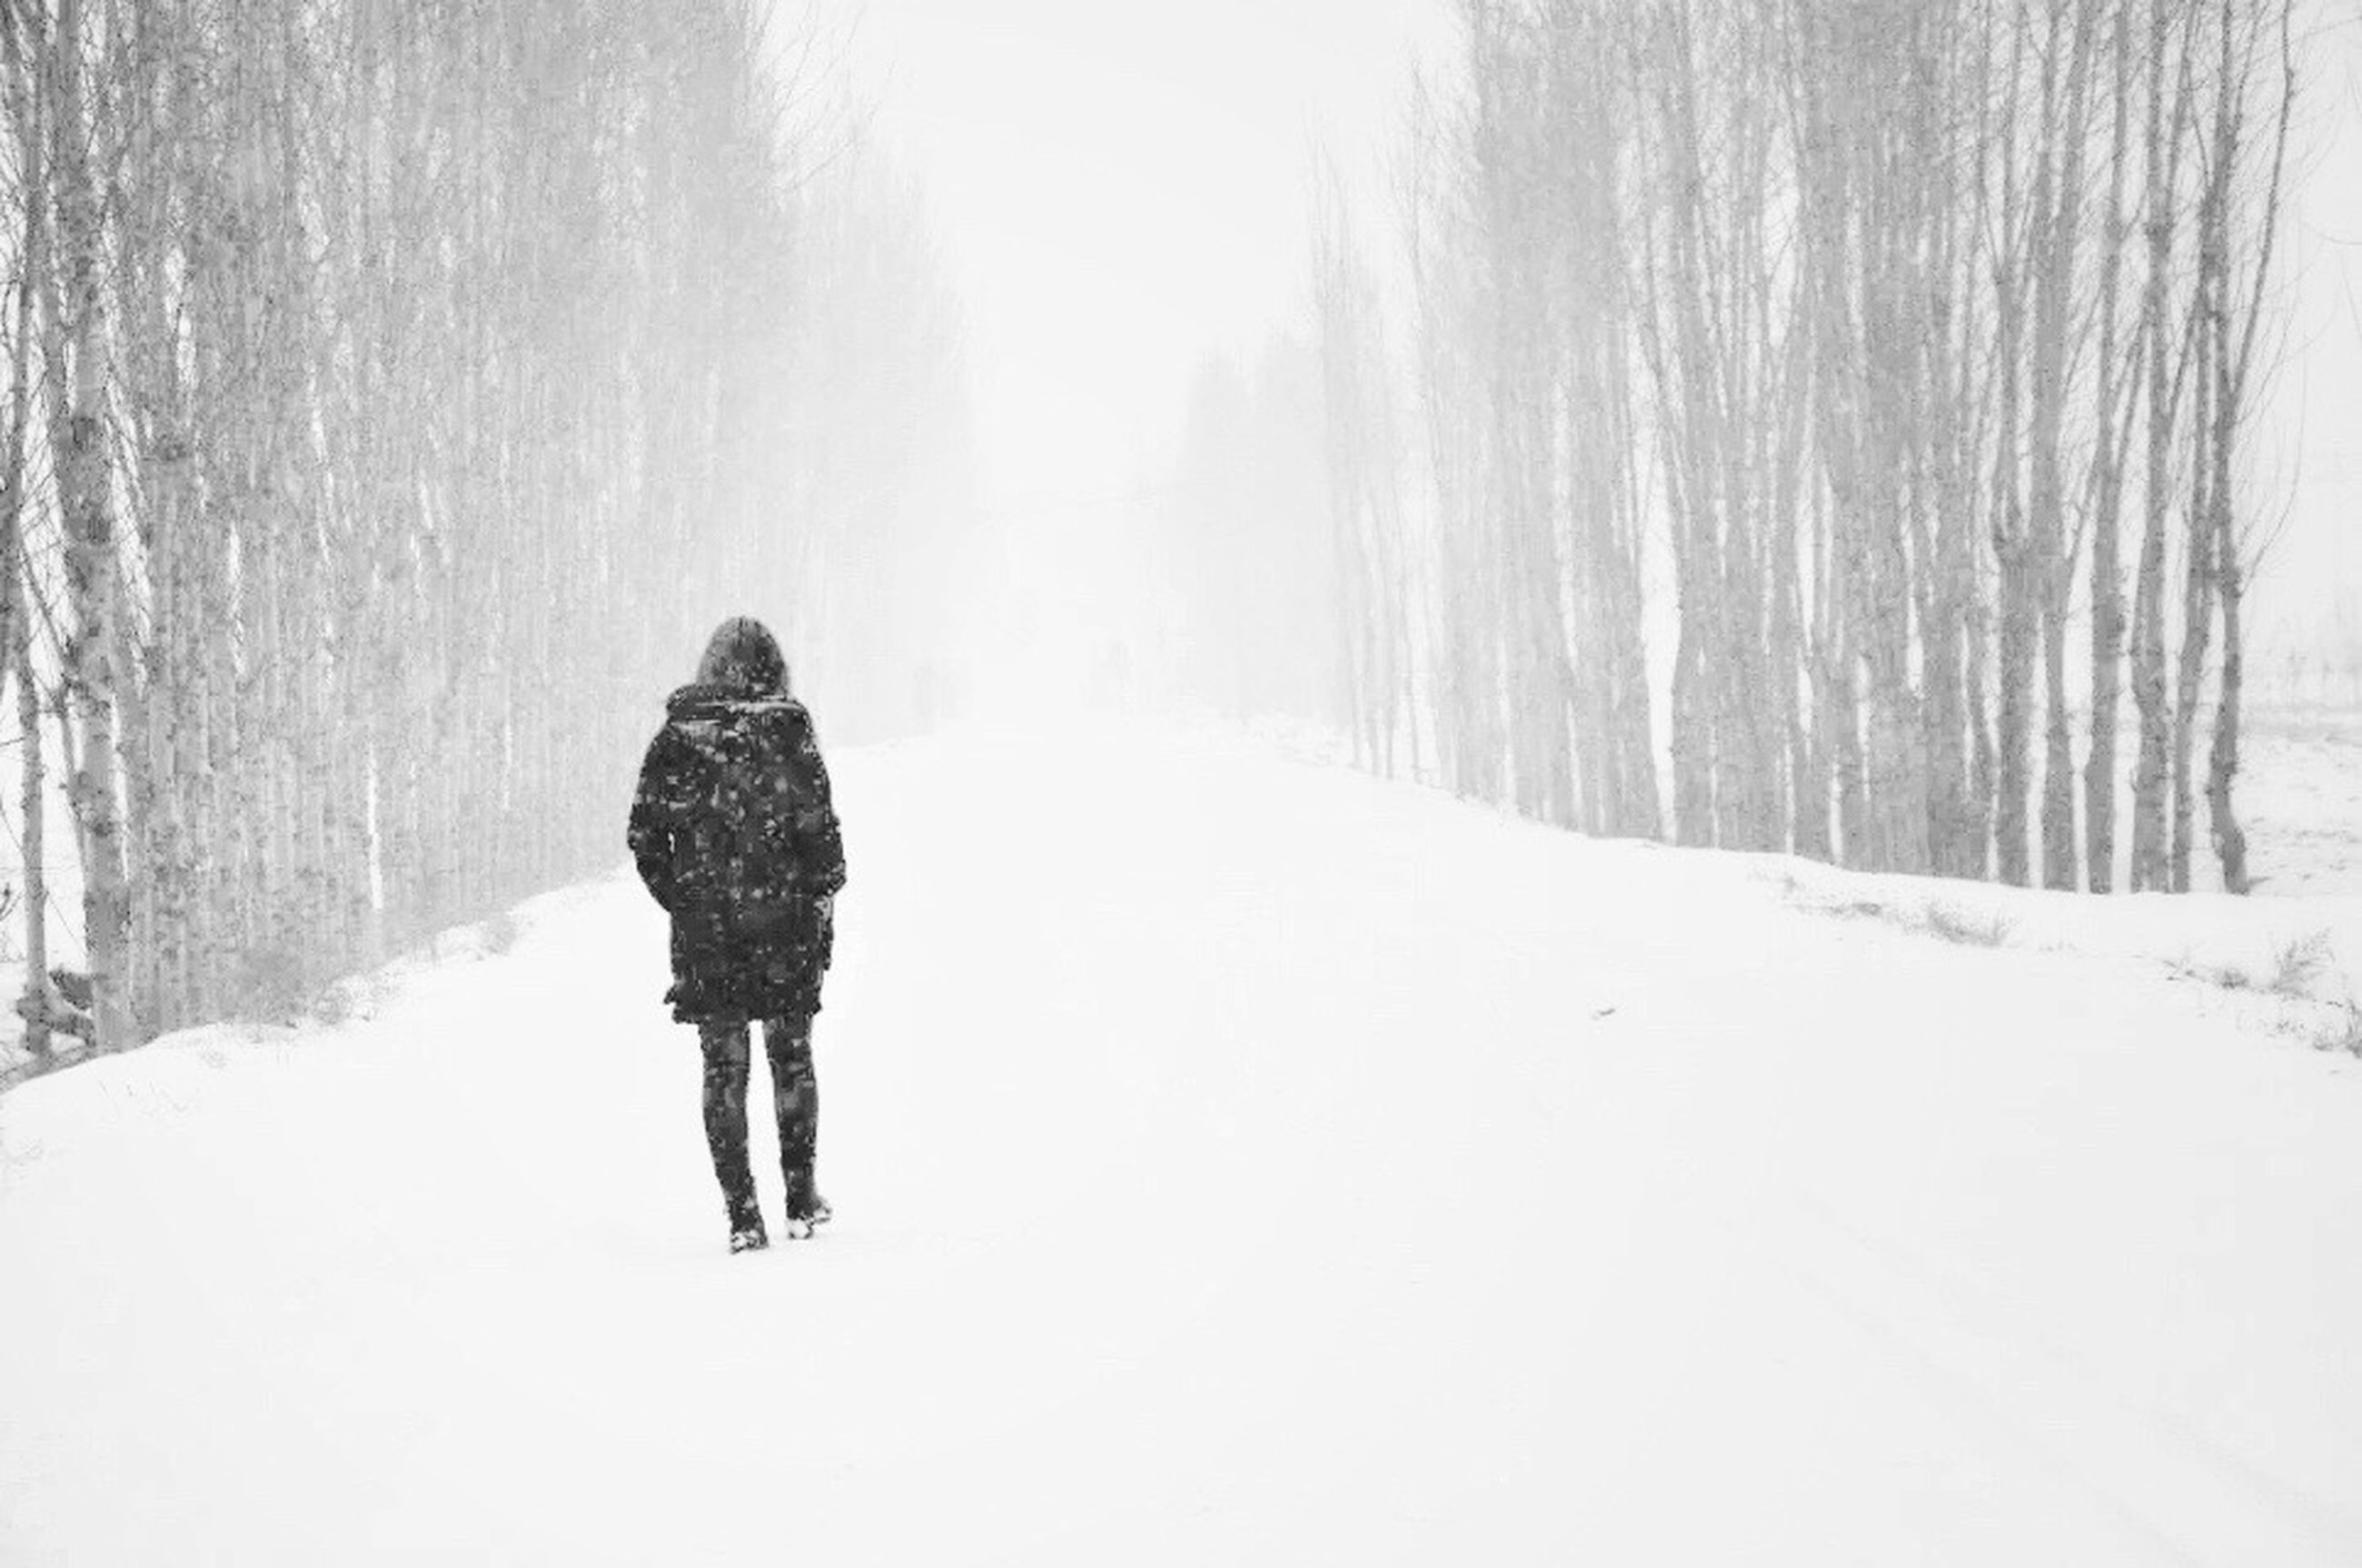 snow, winter, cold temperature, snowing, one person, full length, rear view, people, day, one woman only, tree, outdoors, nature, adults only, beauty in nature, only women, adult, warm clothing